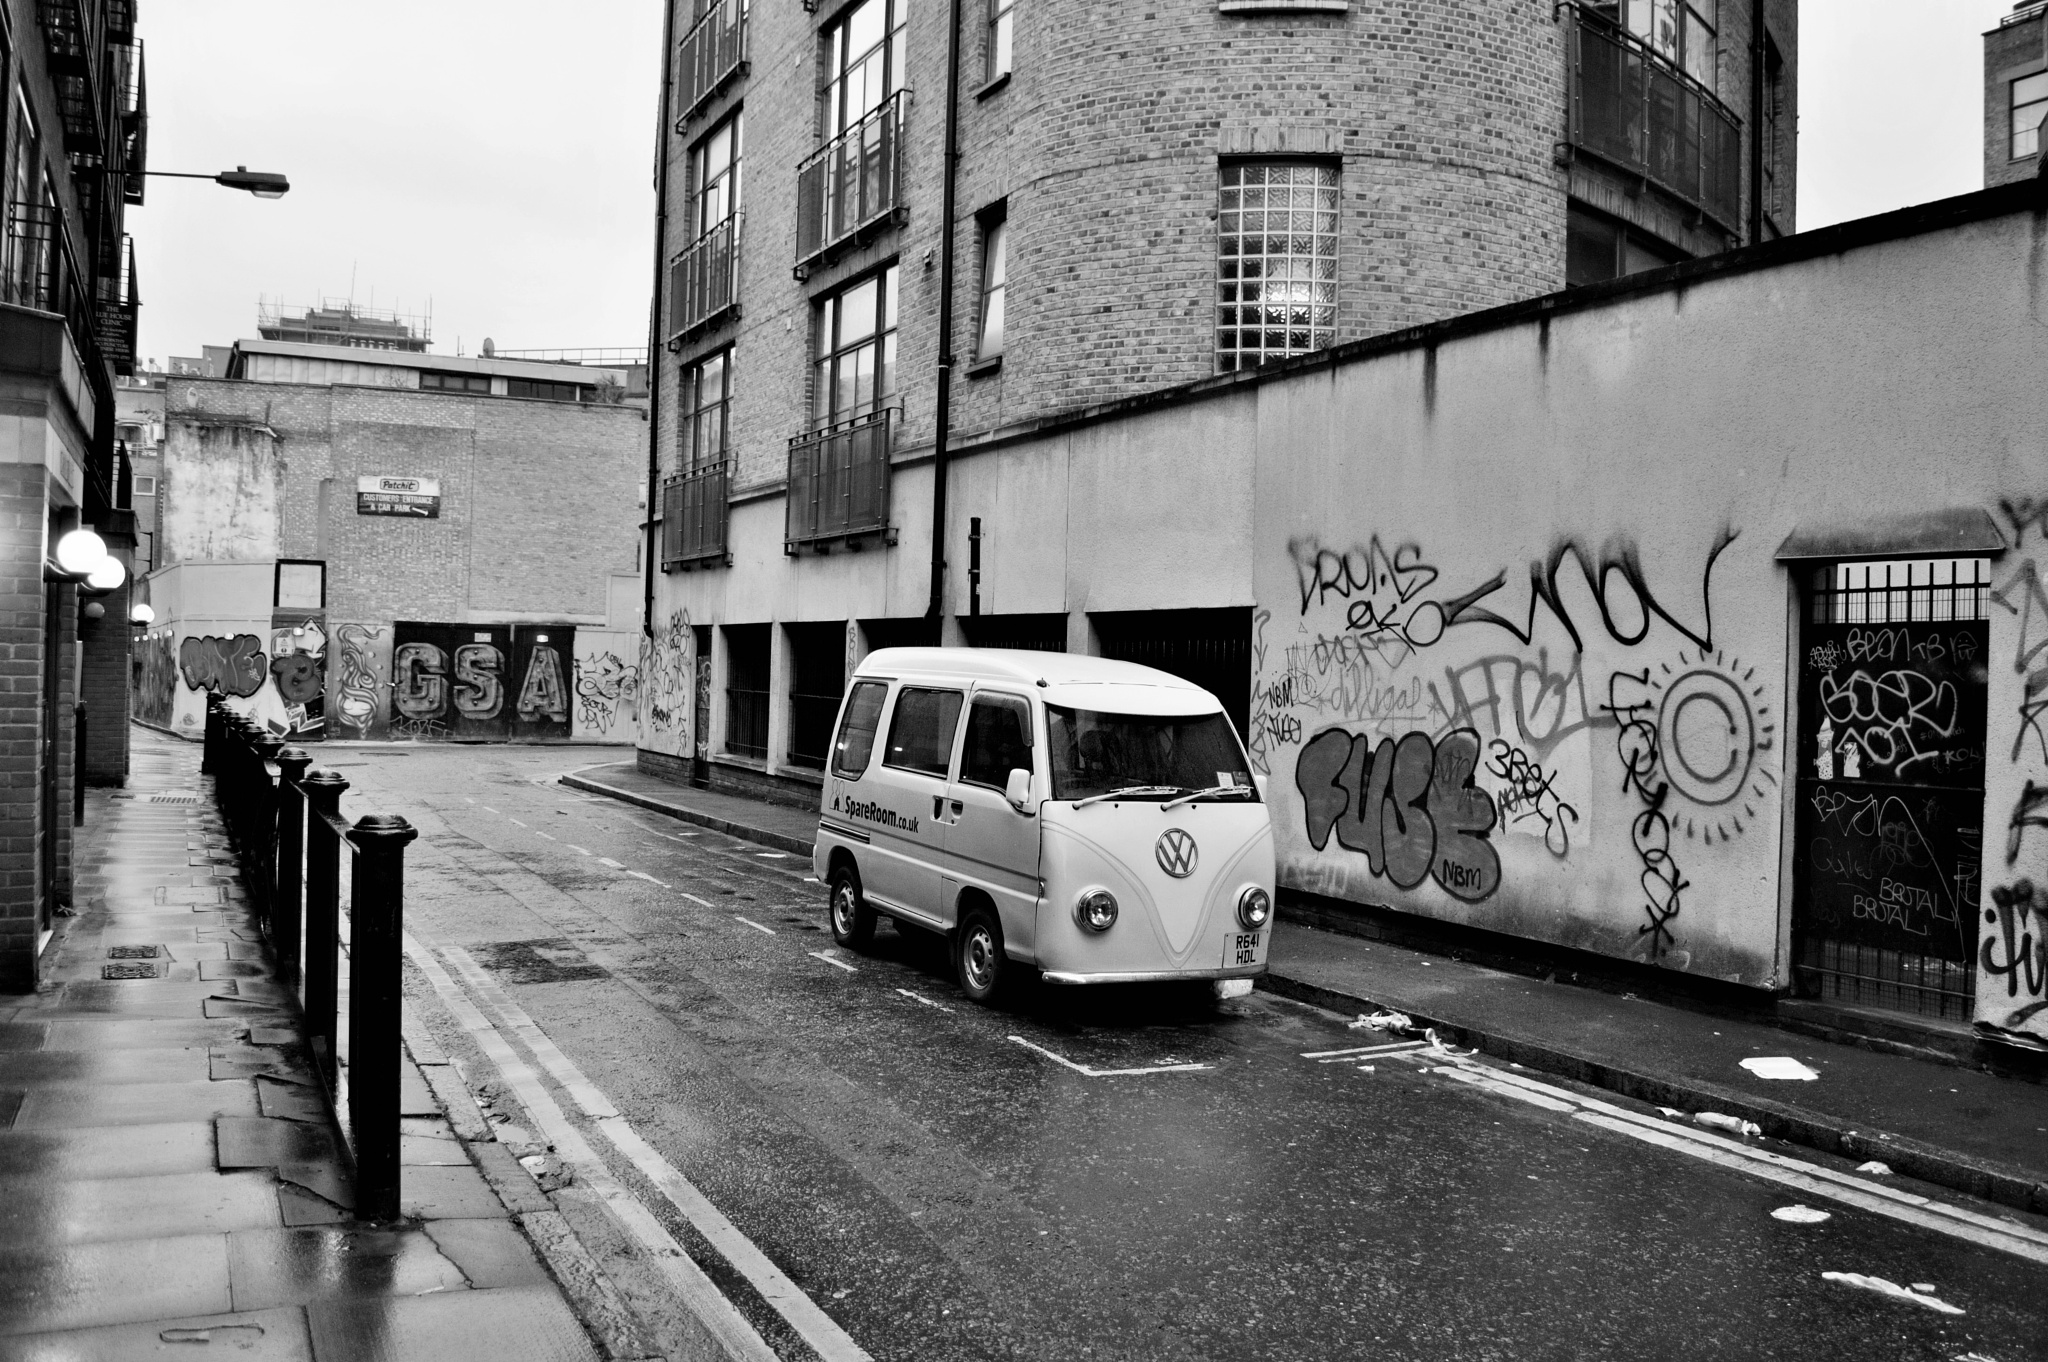 East London  by maxsand68